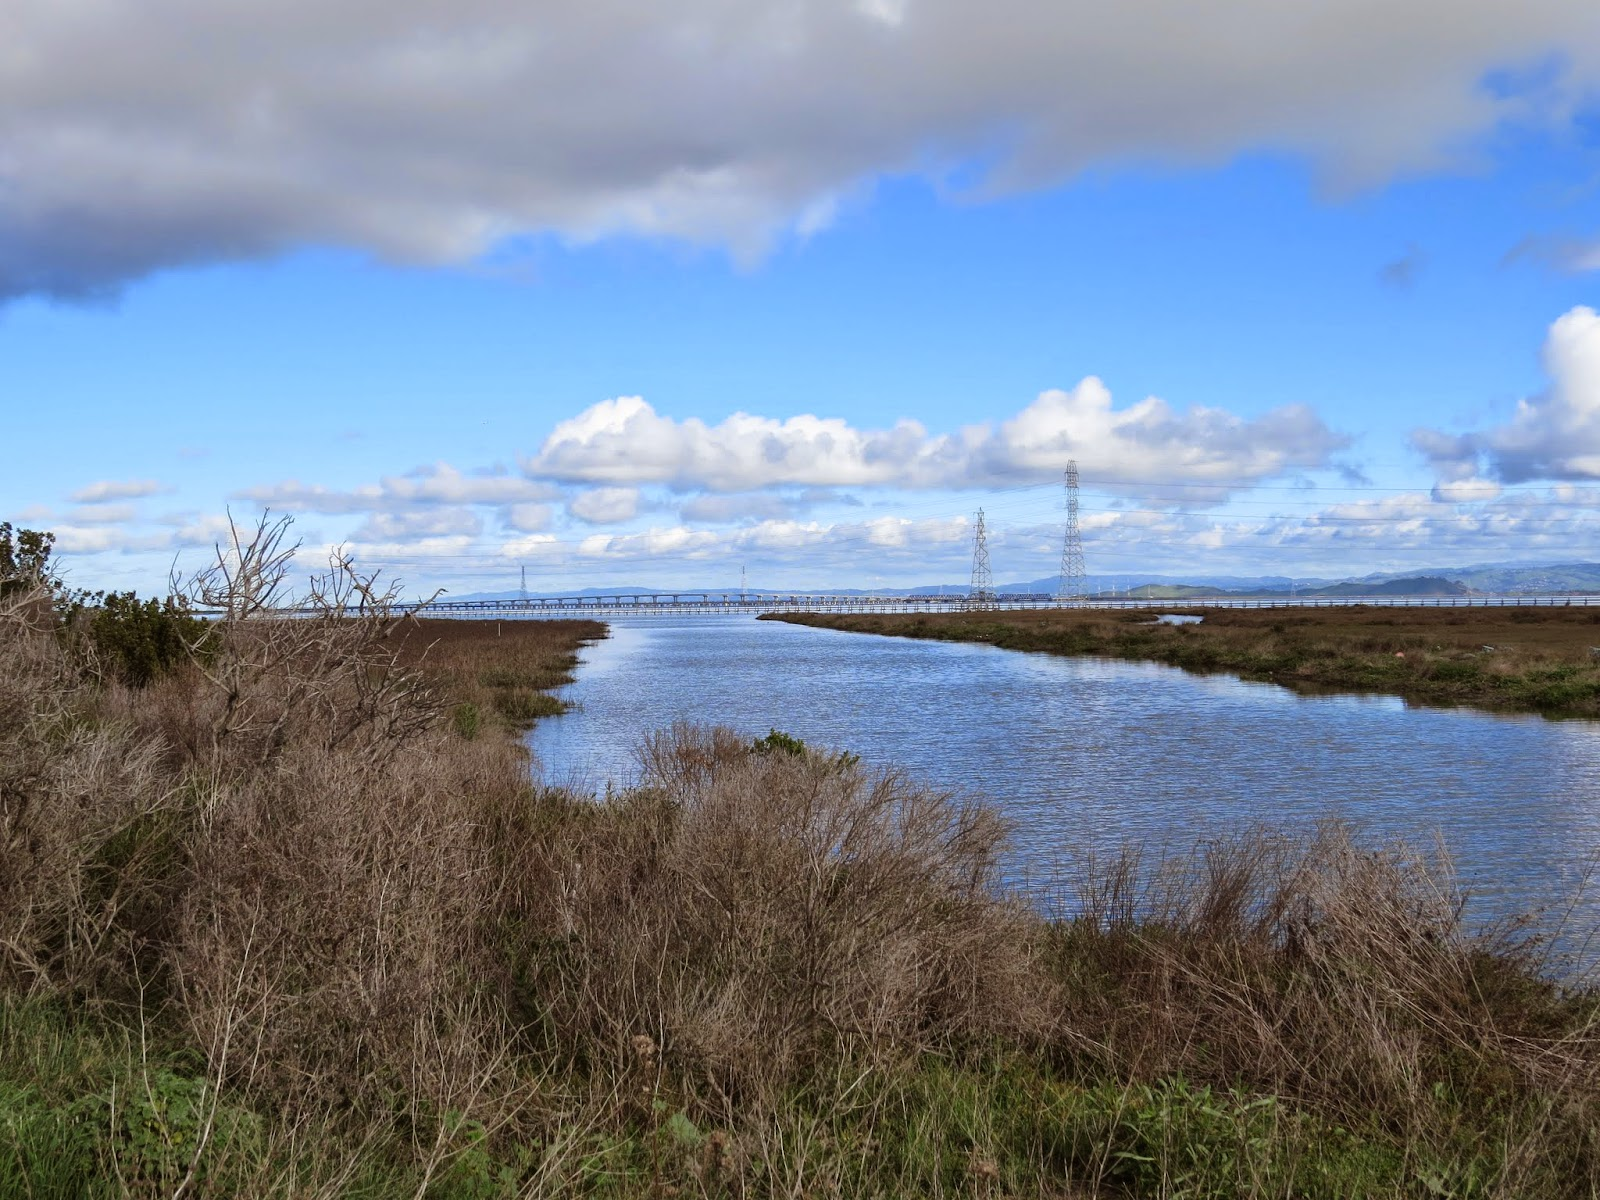 water channel in the Palo Alto Baylands